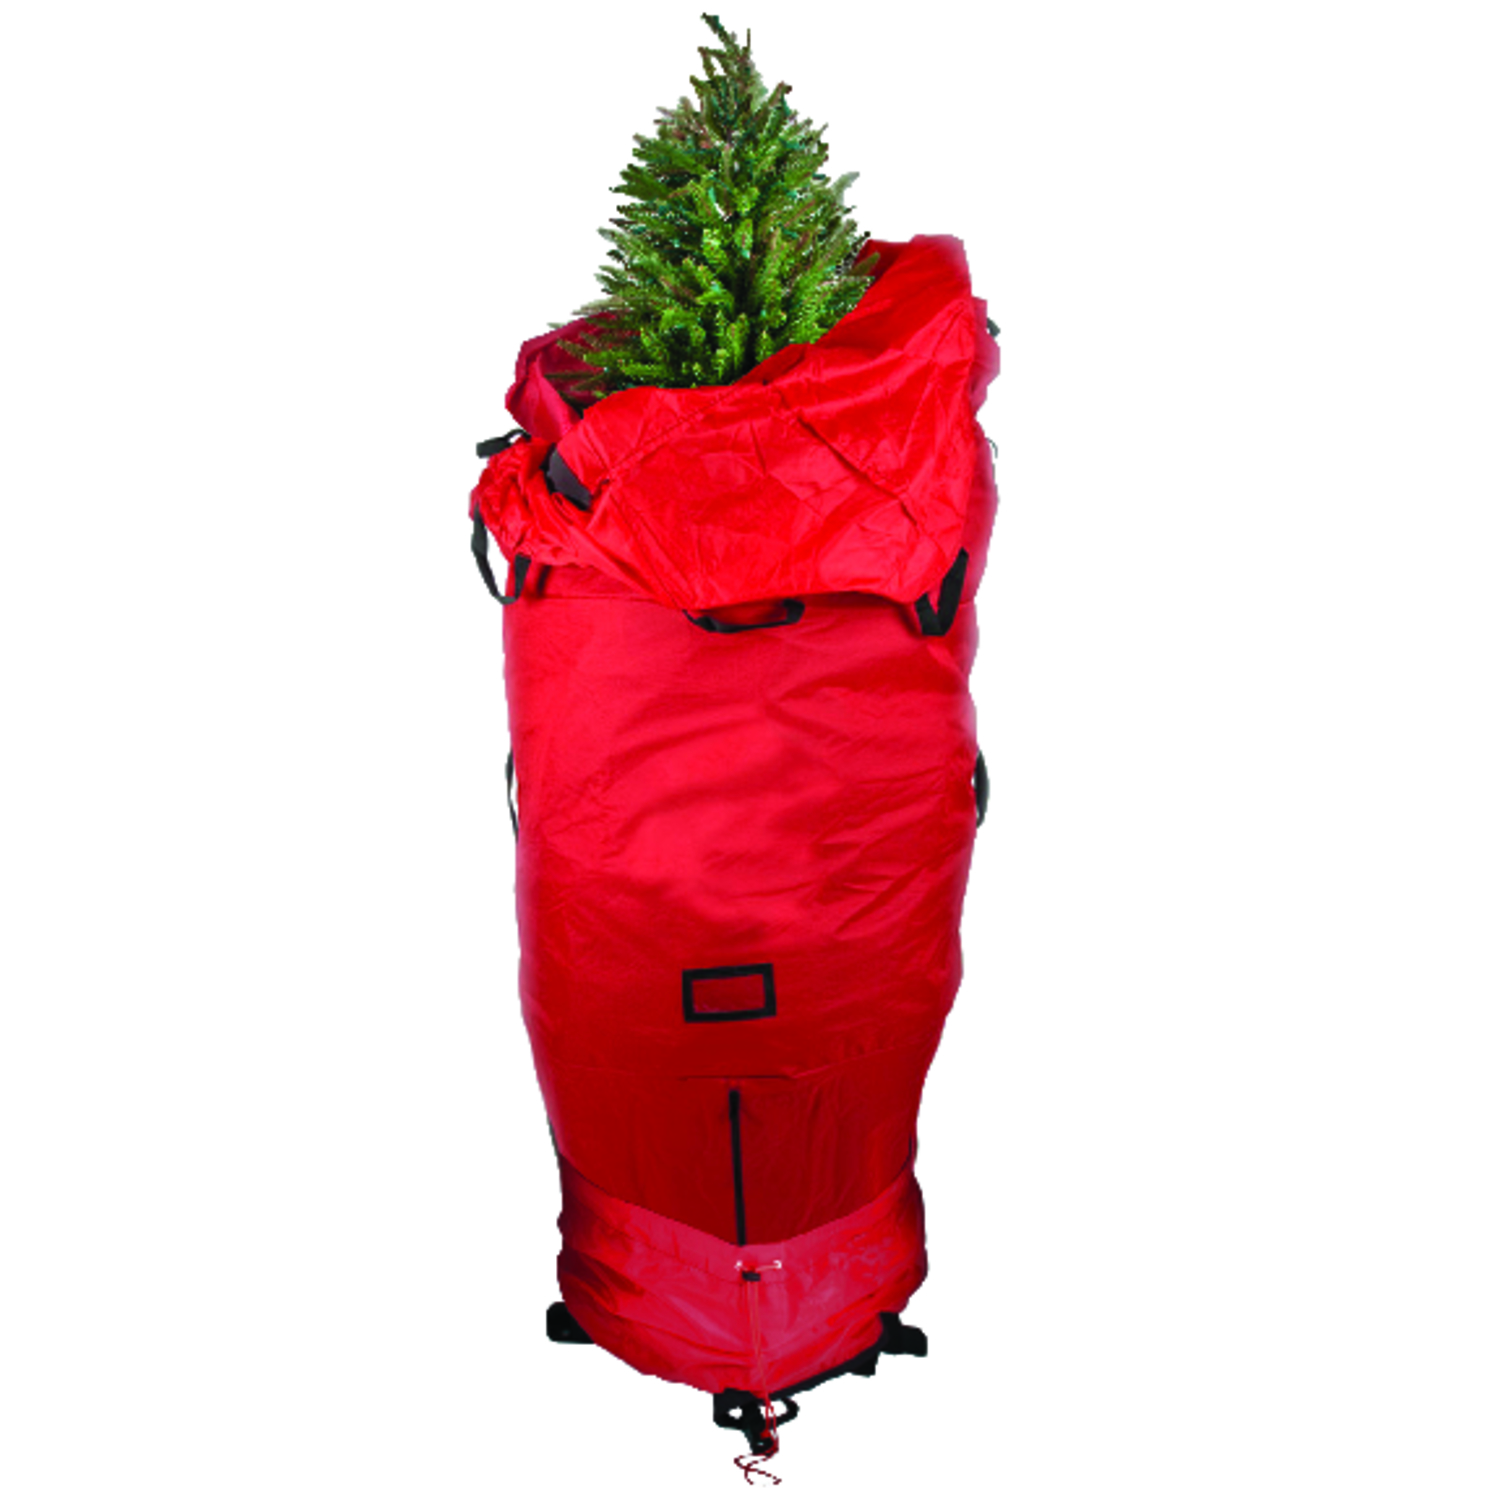 The easiest way to store your artificial tree! Simply attach to your existing tree stand like a tree skirt and enjoy your tree for the season! After the holidays are over, open the skirt, pull up and compress, and the tree is ready for storage in minutes!